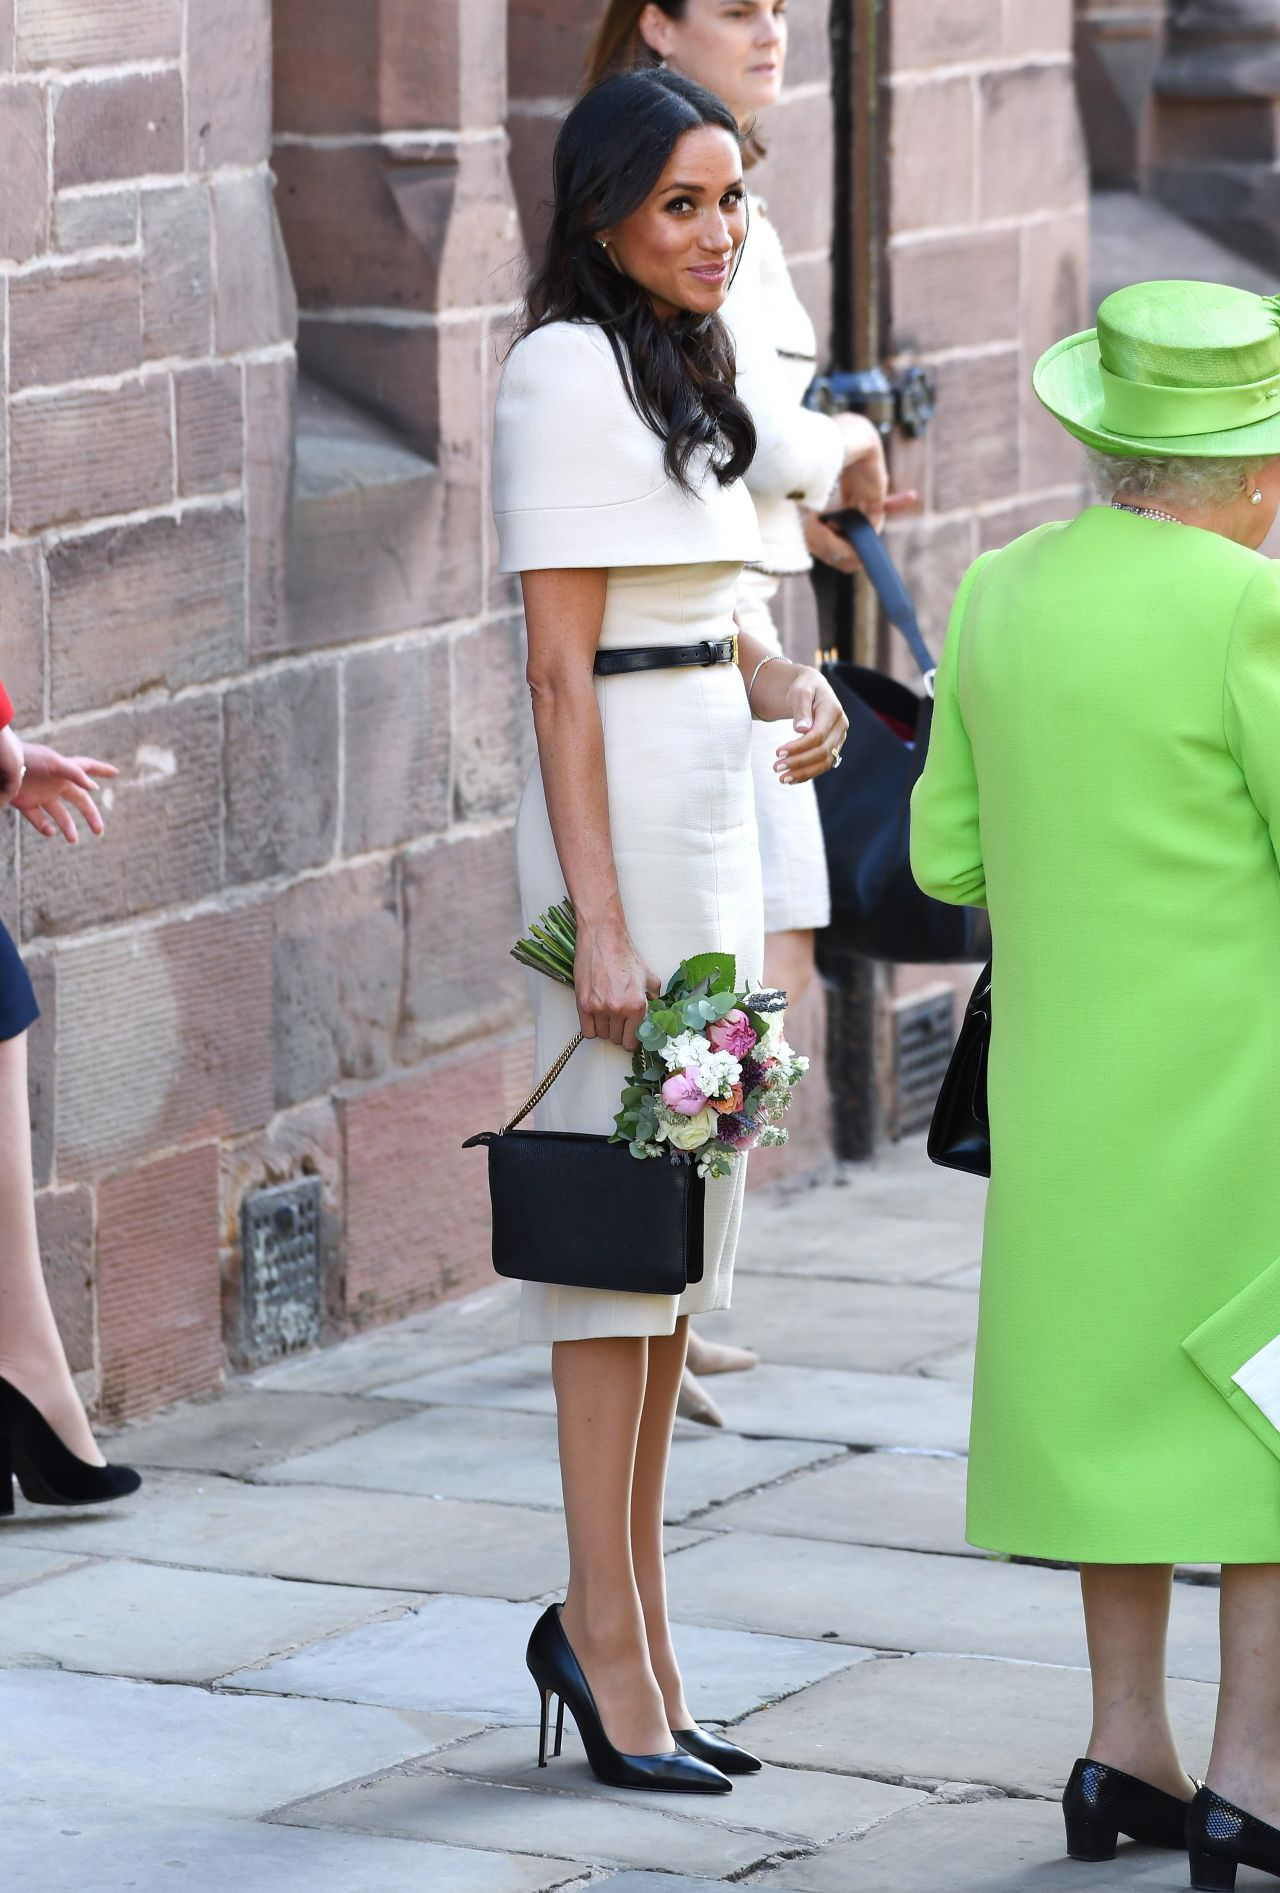 meghan markle  the duchess of sussex  and queen elizabeth ii first solo outing 06  14  2018